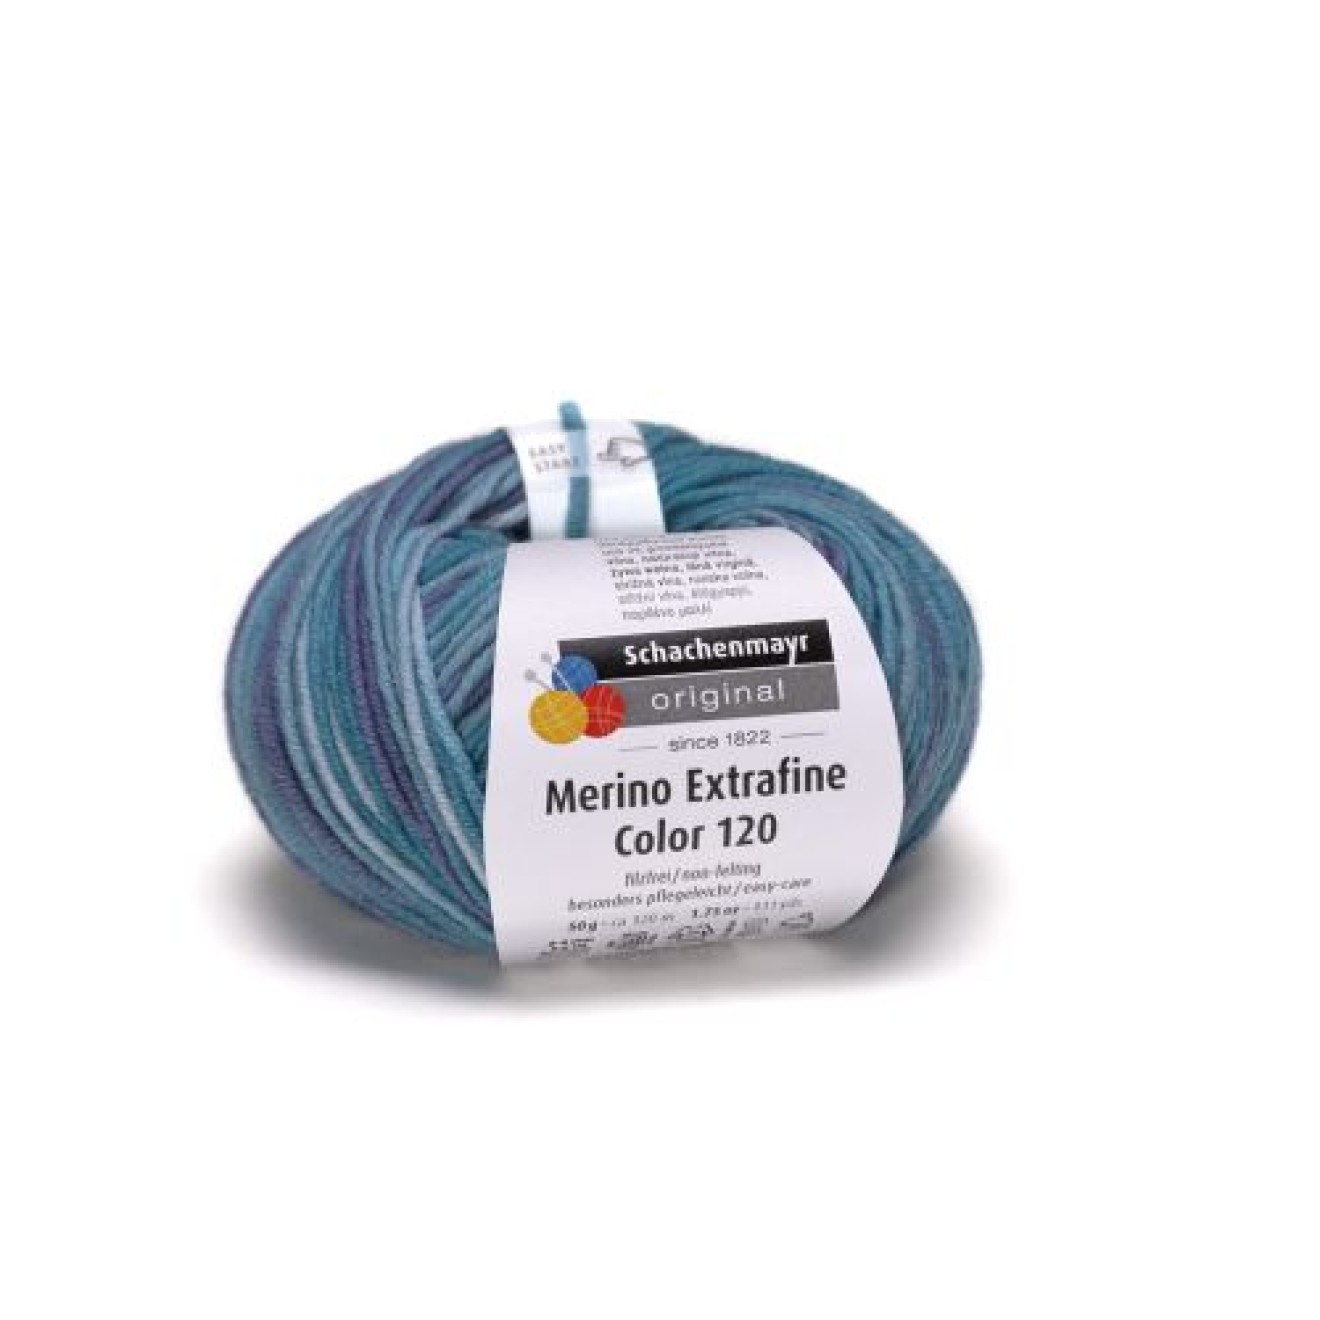 Merino Extrafine Color 120 (17)